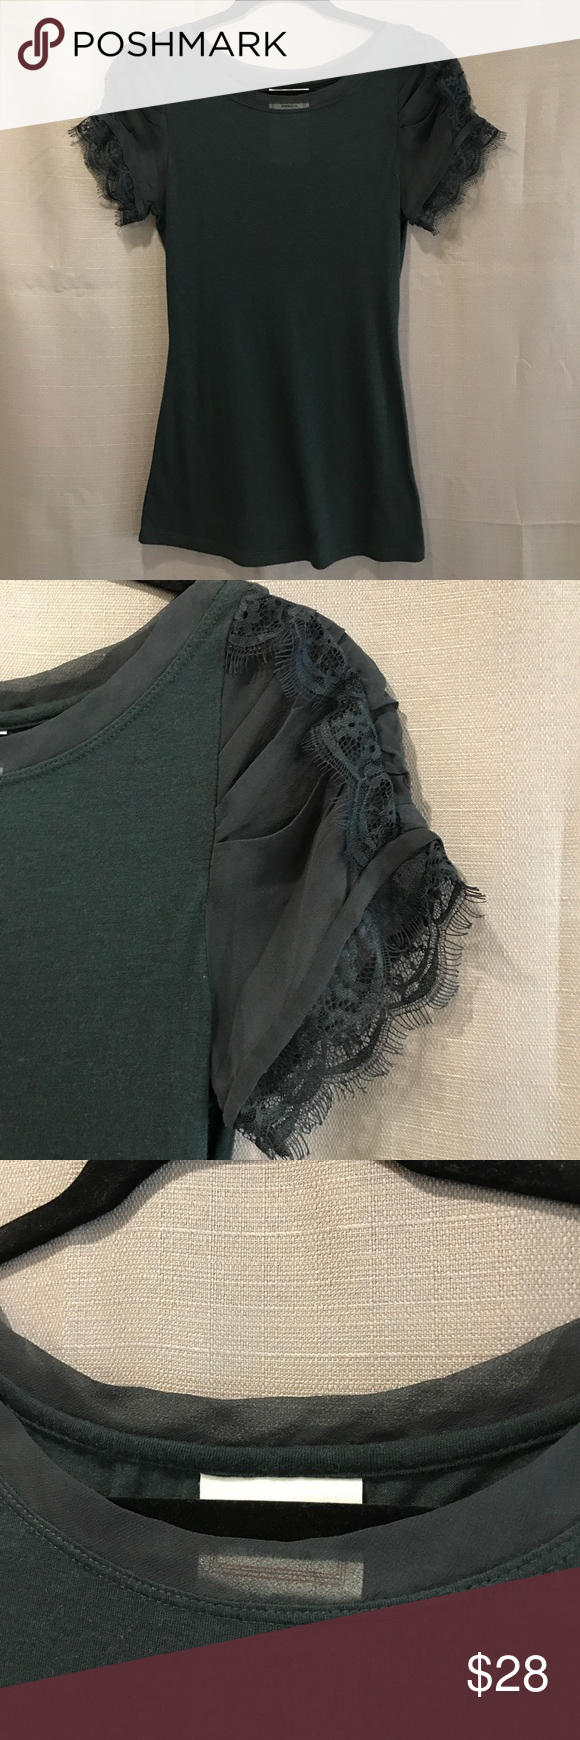 SALE ⚡️Anthropologie :: Laced cap sleeve tee Excellent used condition, worn once! Soft black tee with lace sleeves and sheer neckline detail! So versatile! Anthropologie Tops